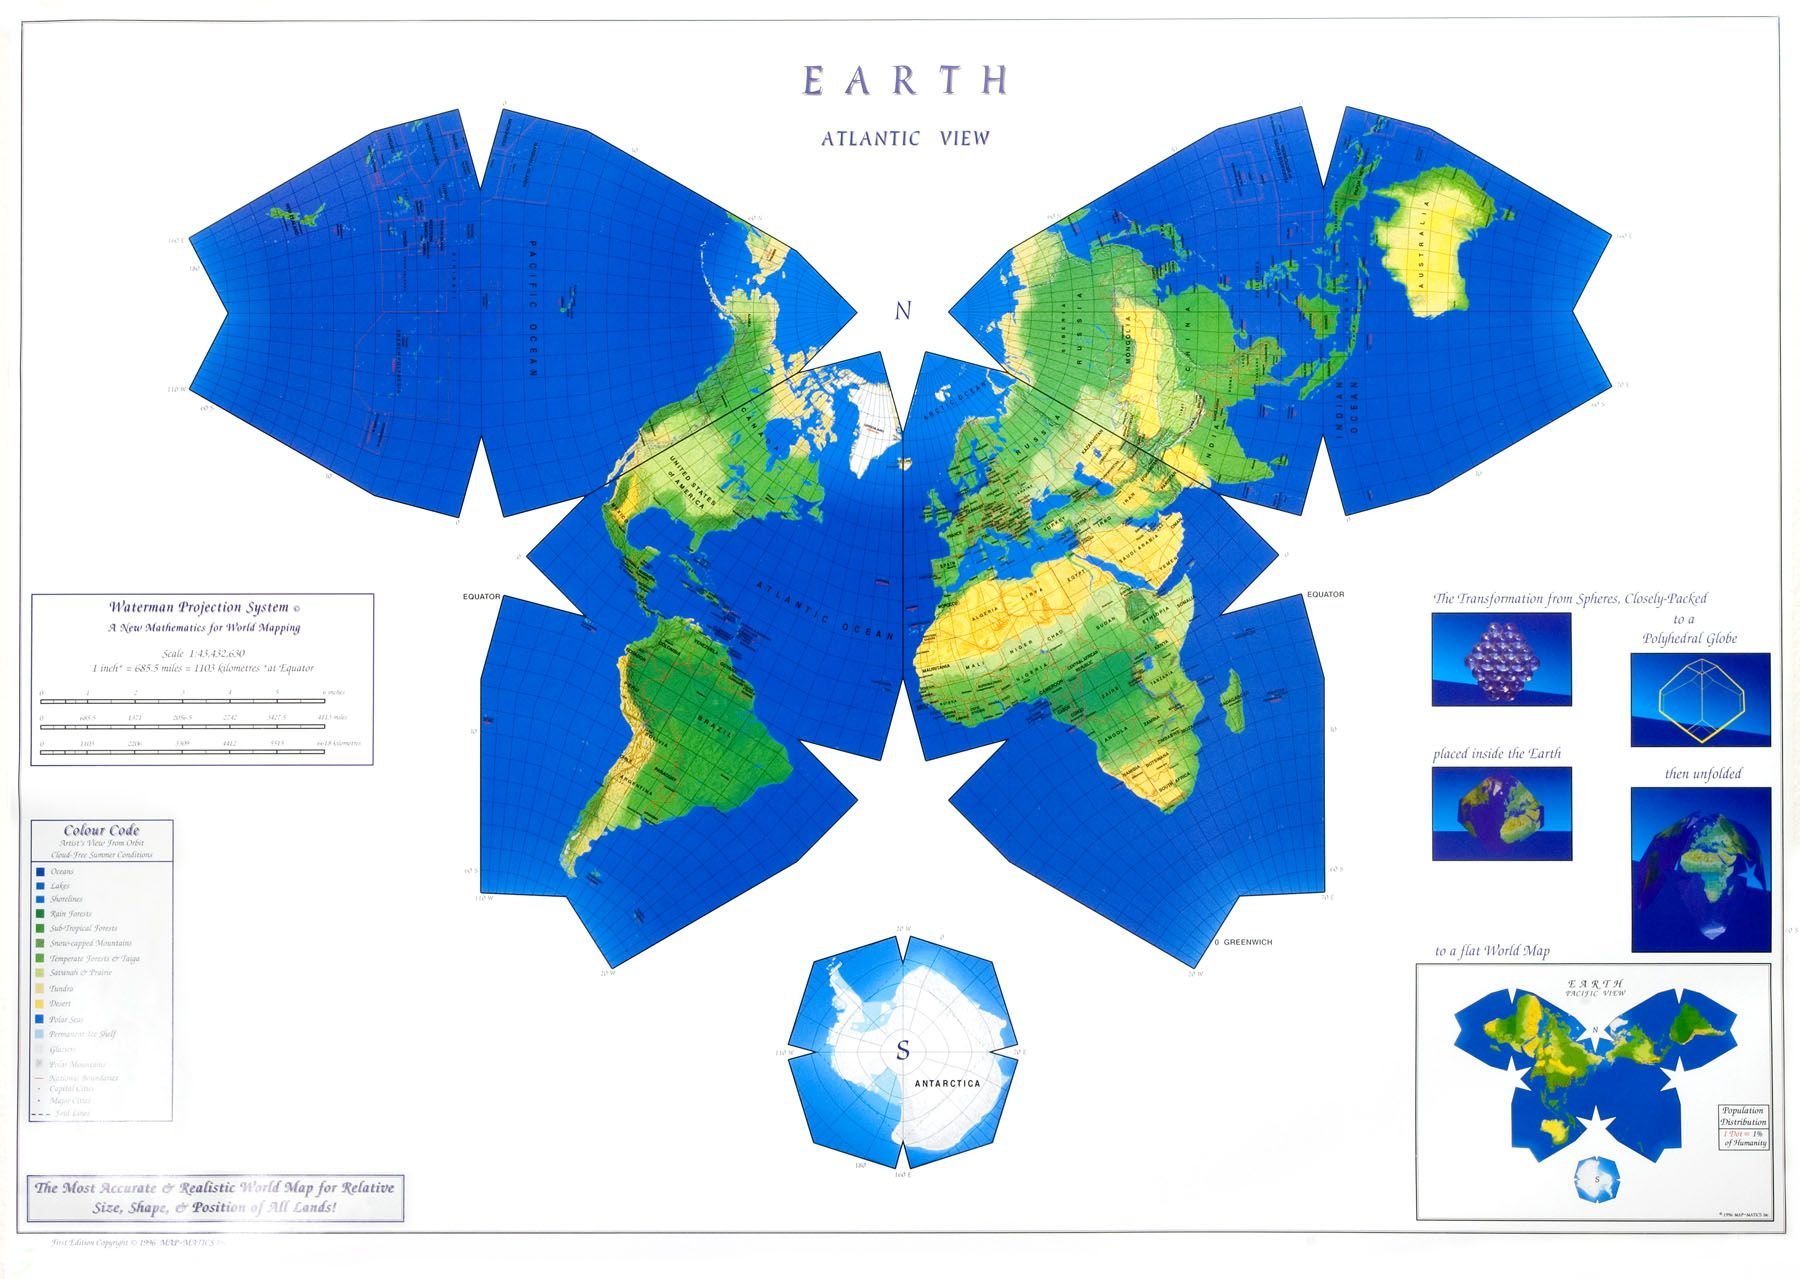 World Map India Centric.  Butterfly Waterman Projection World Map Atlantic centric with Antarctic Cutaway 36 maps that will make you see the world in completely new ways